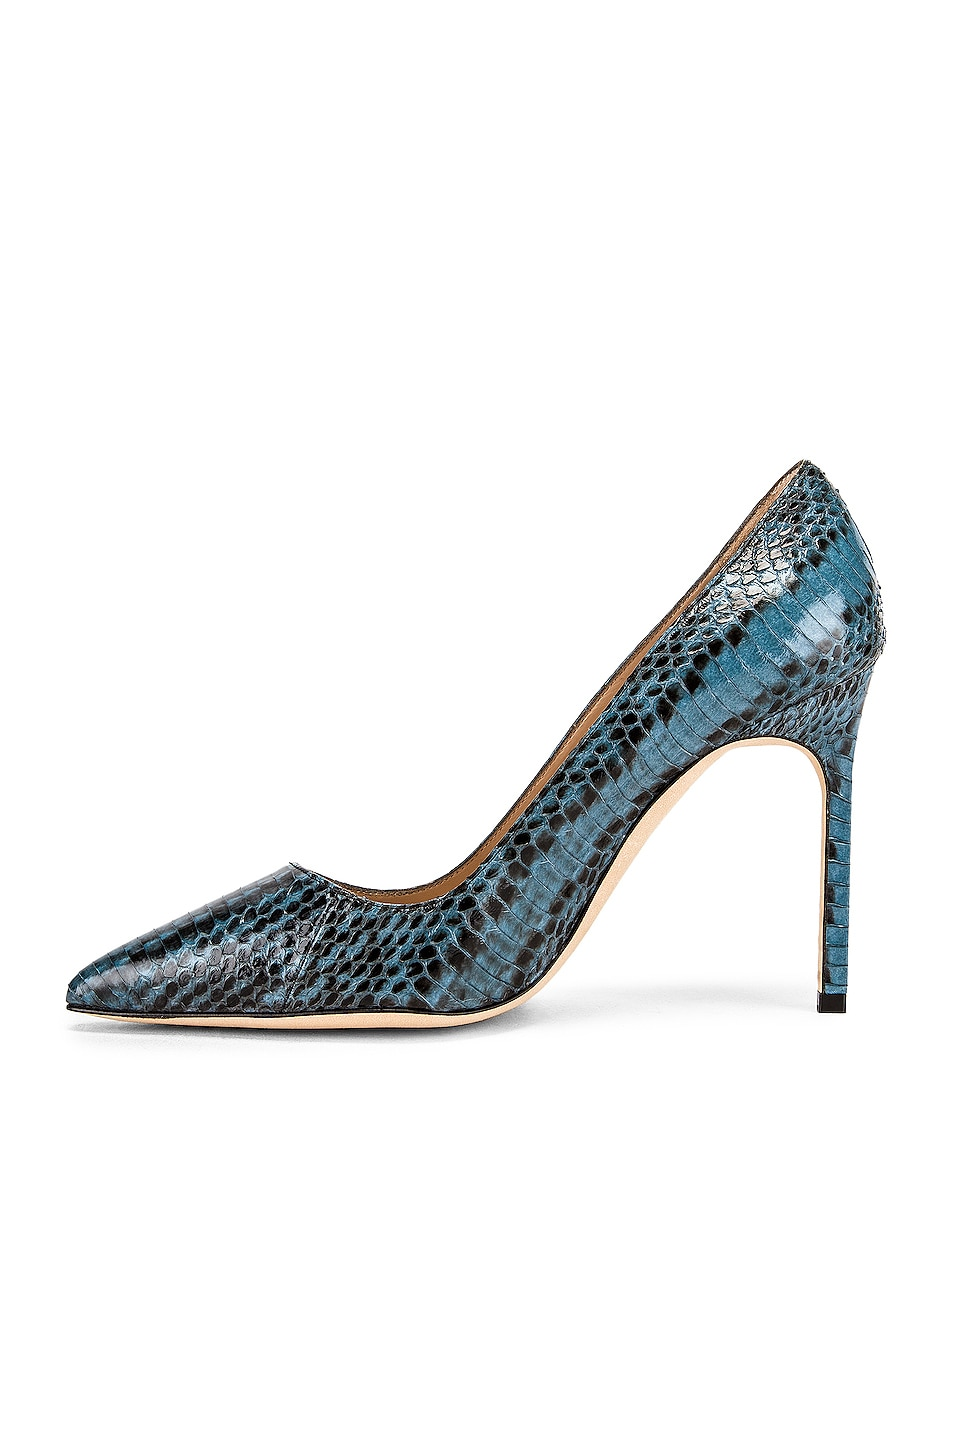 Image 5 of Manolo Blahnik BB 105 Pump in Blue Snake